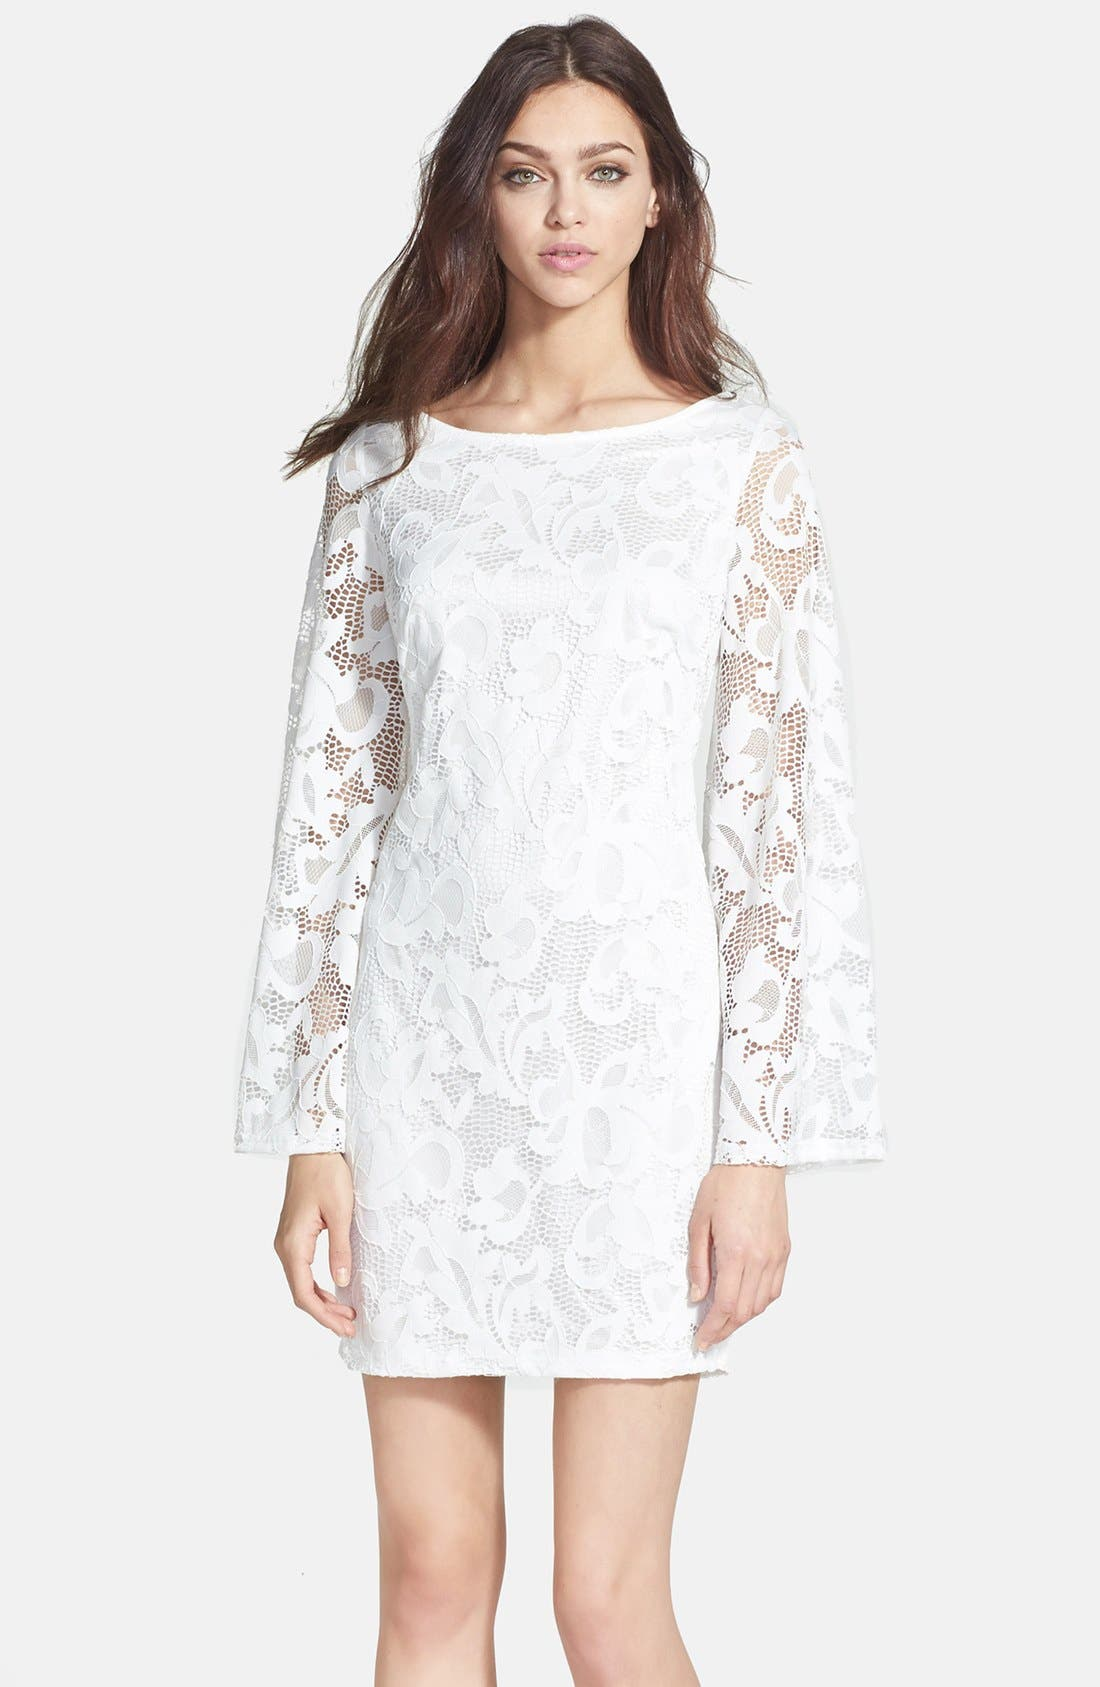 Alternate Image 1 Selected - Alexia Admor Lace Shift Dress